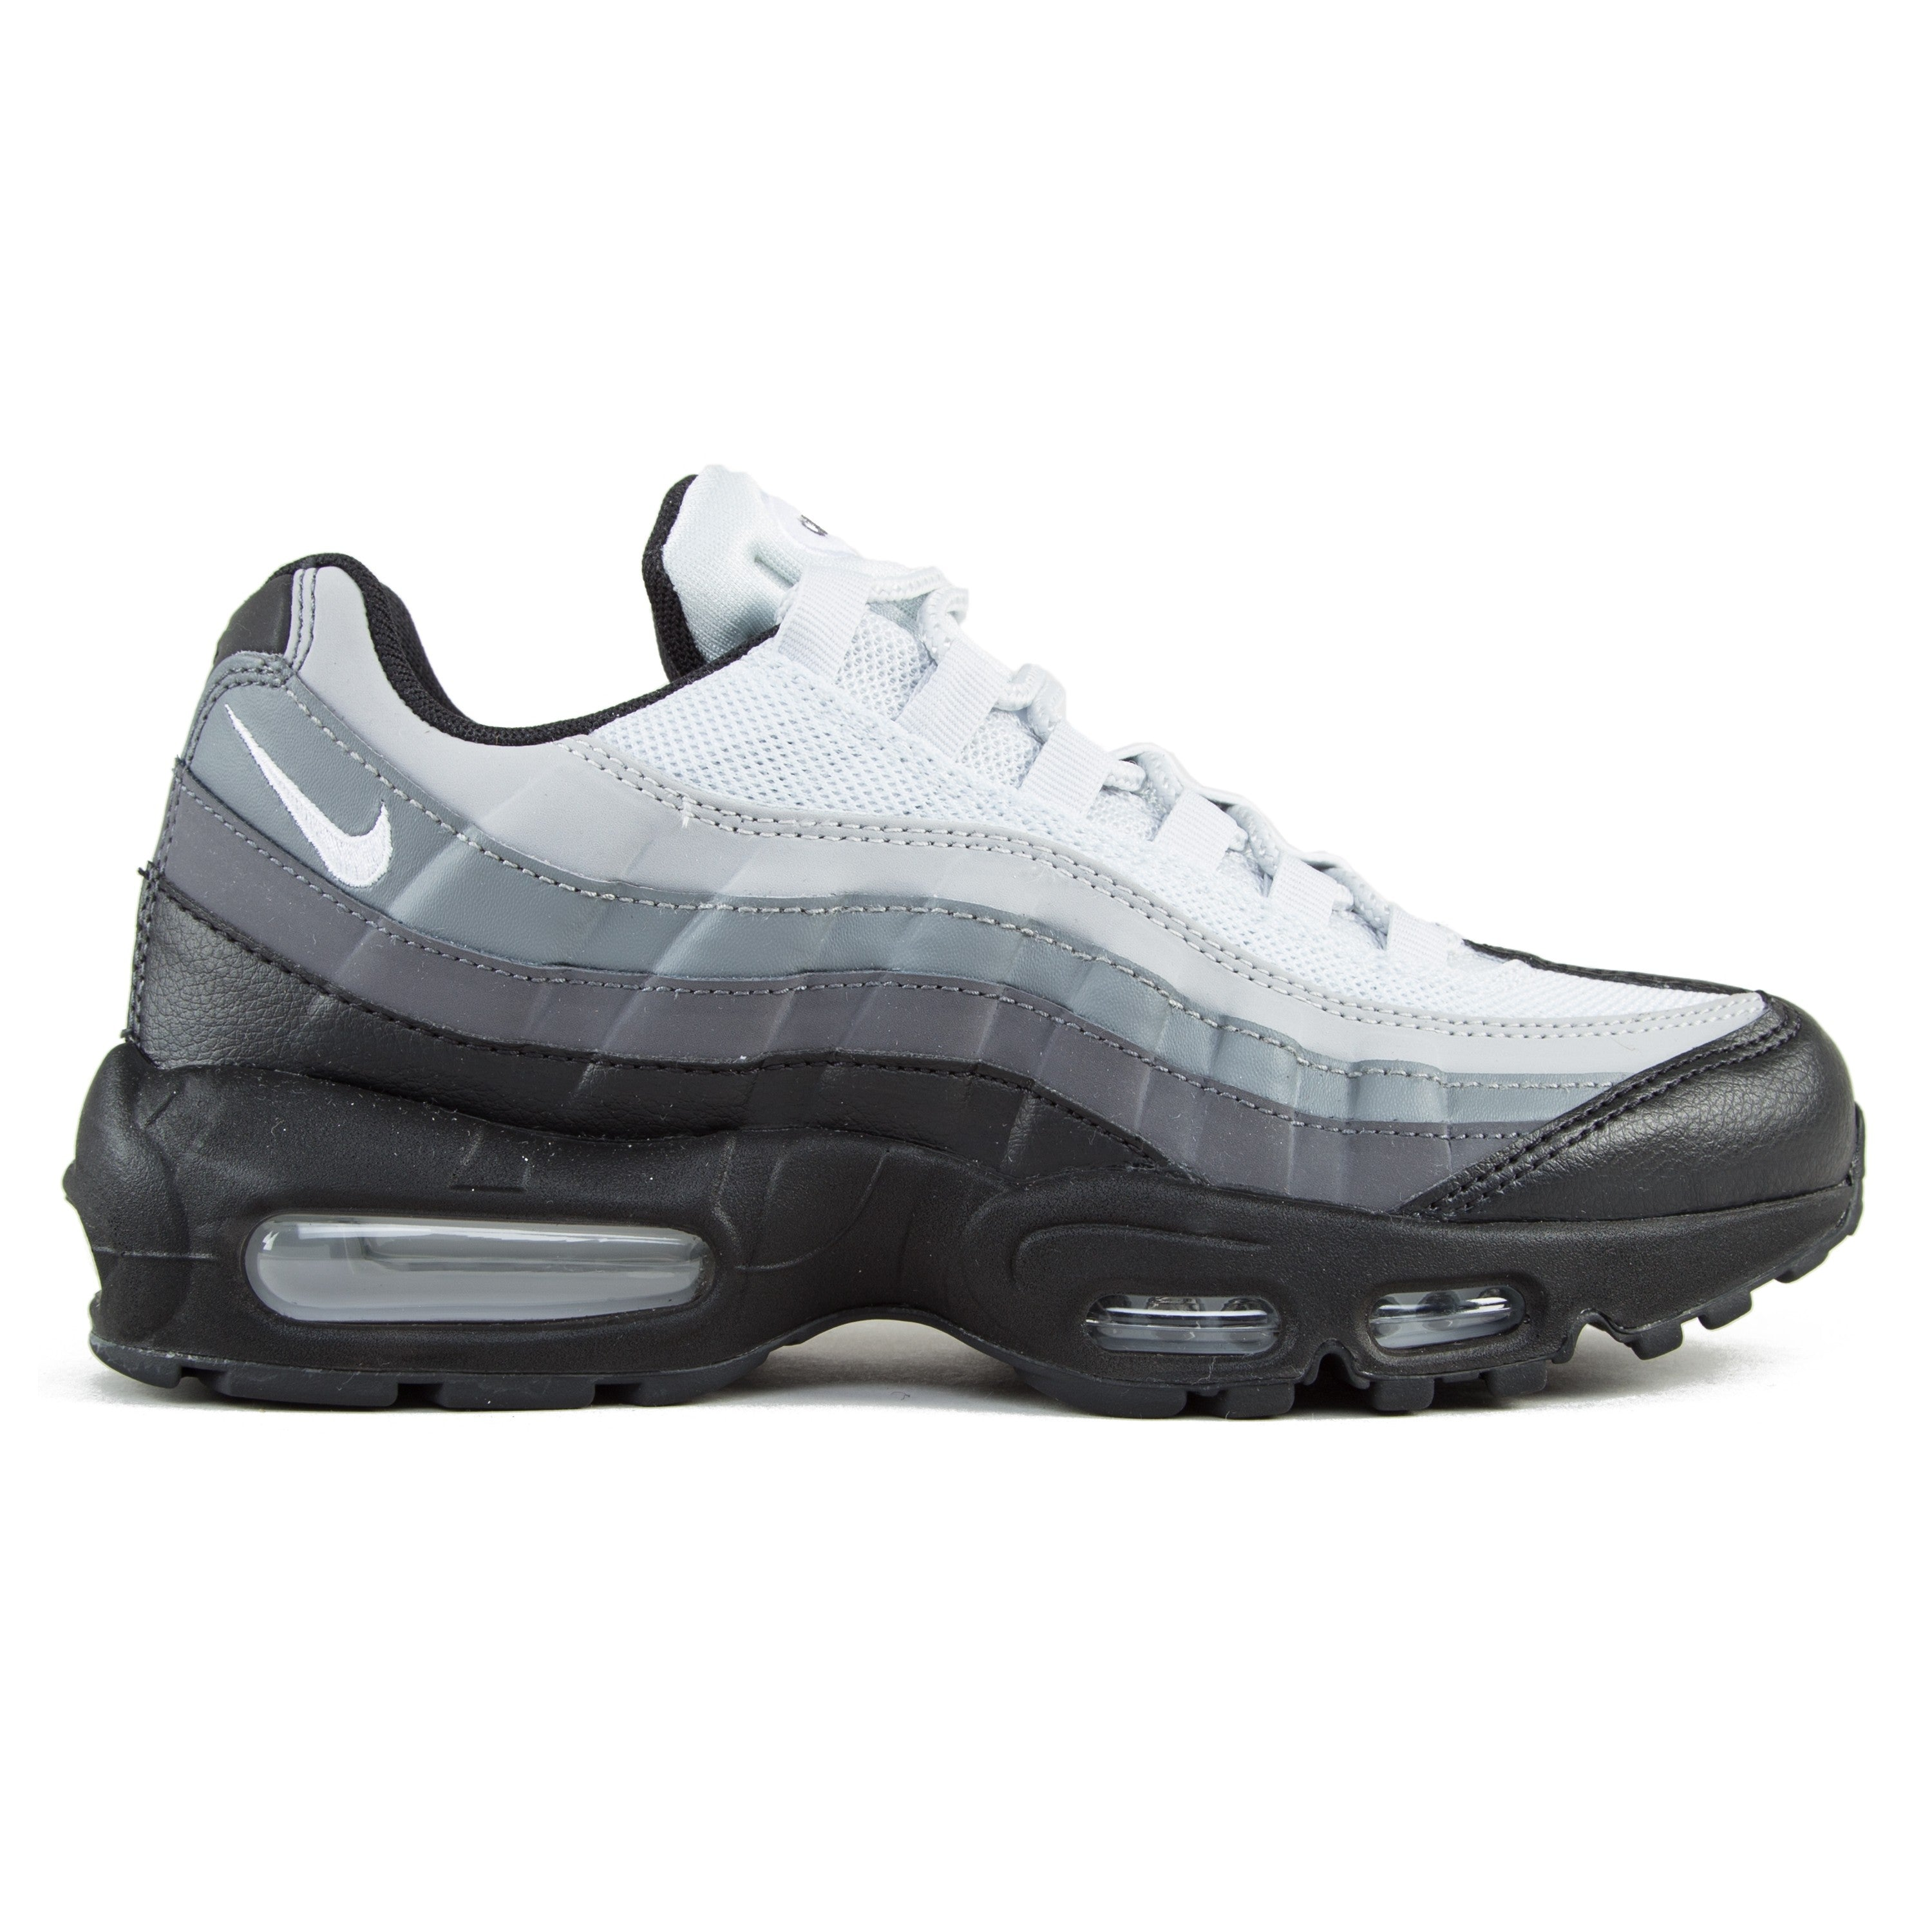 Nike Air Max 95 SE Trainer – Frequency